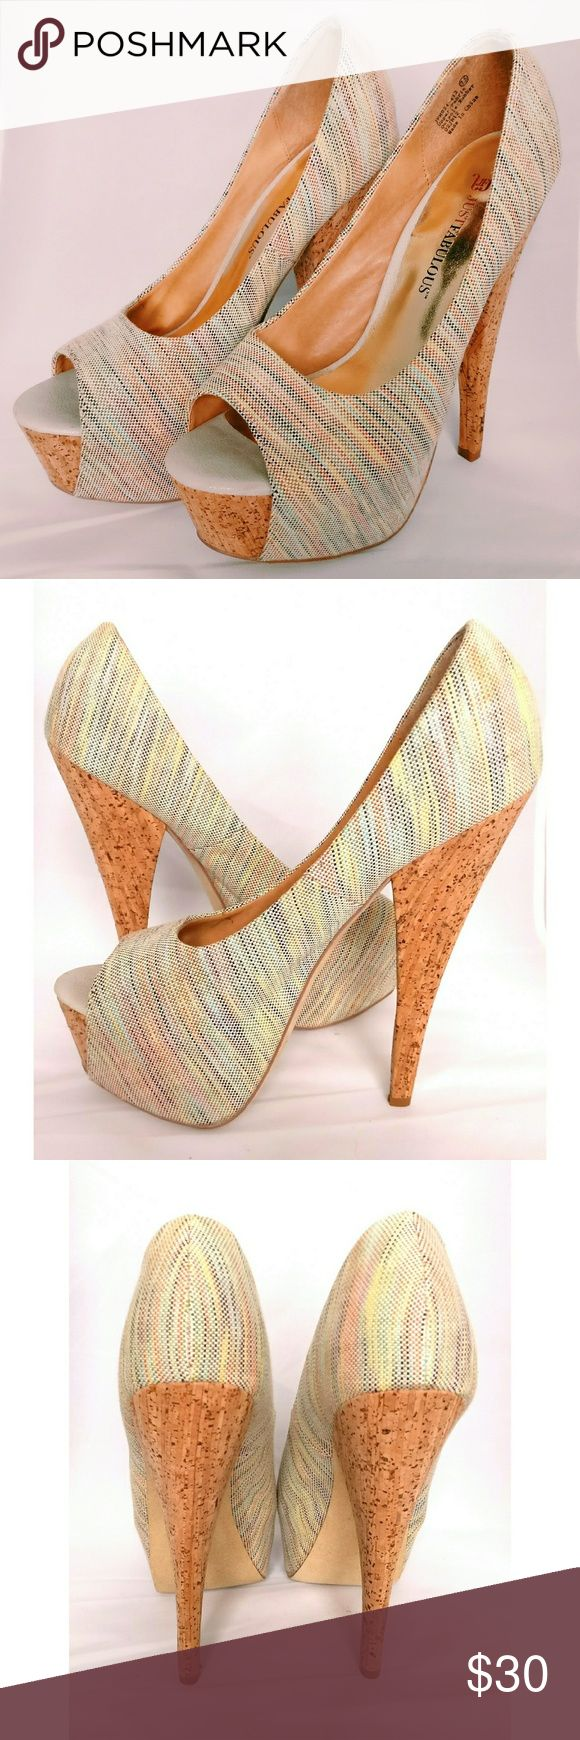 Bouchons, Justfab, Bout Ouvert, Plate forme, Abs, Chaussures Talons, Pompe, Lumières